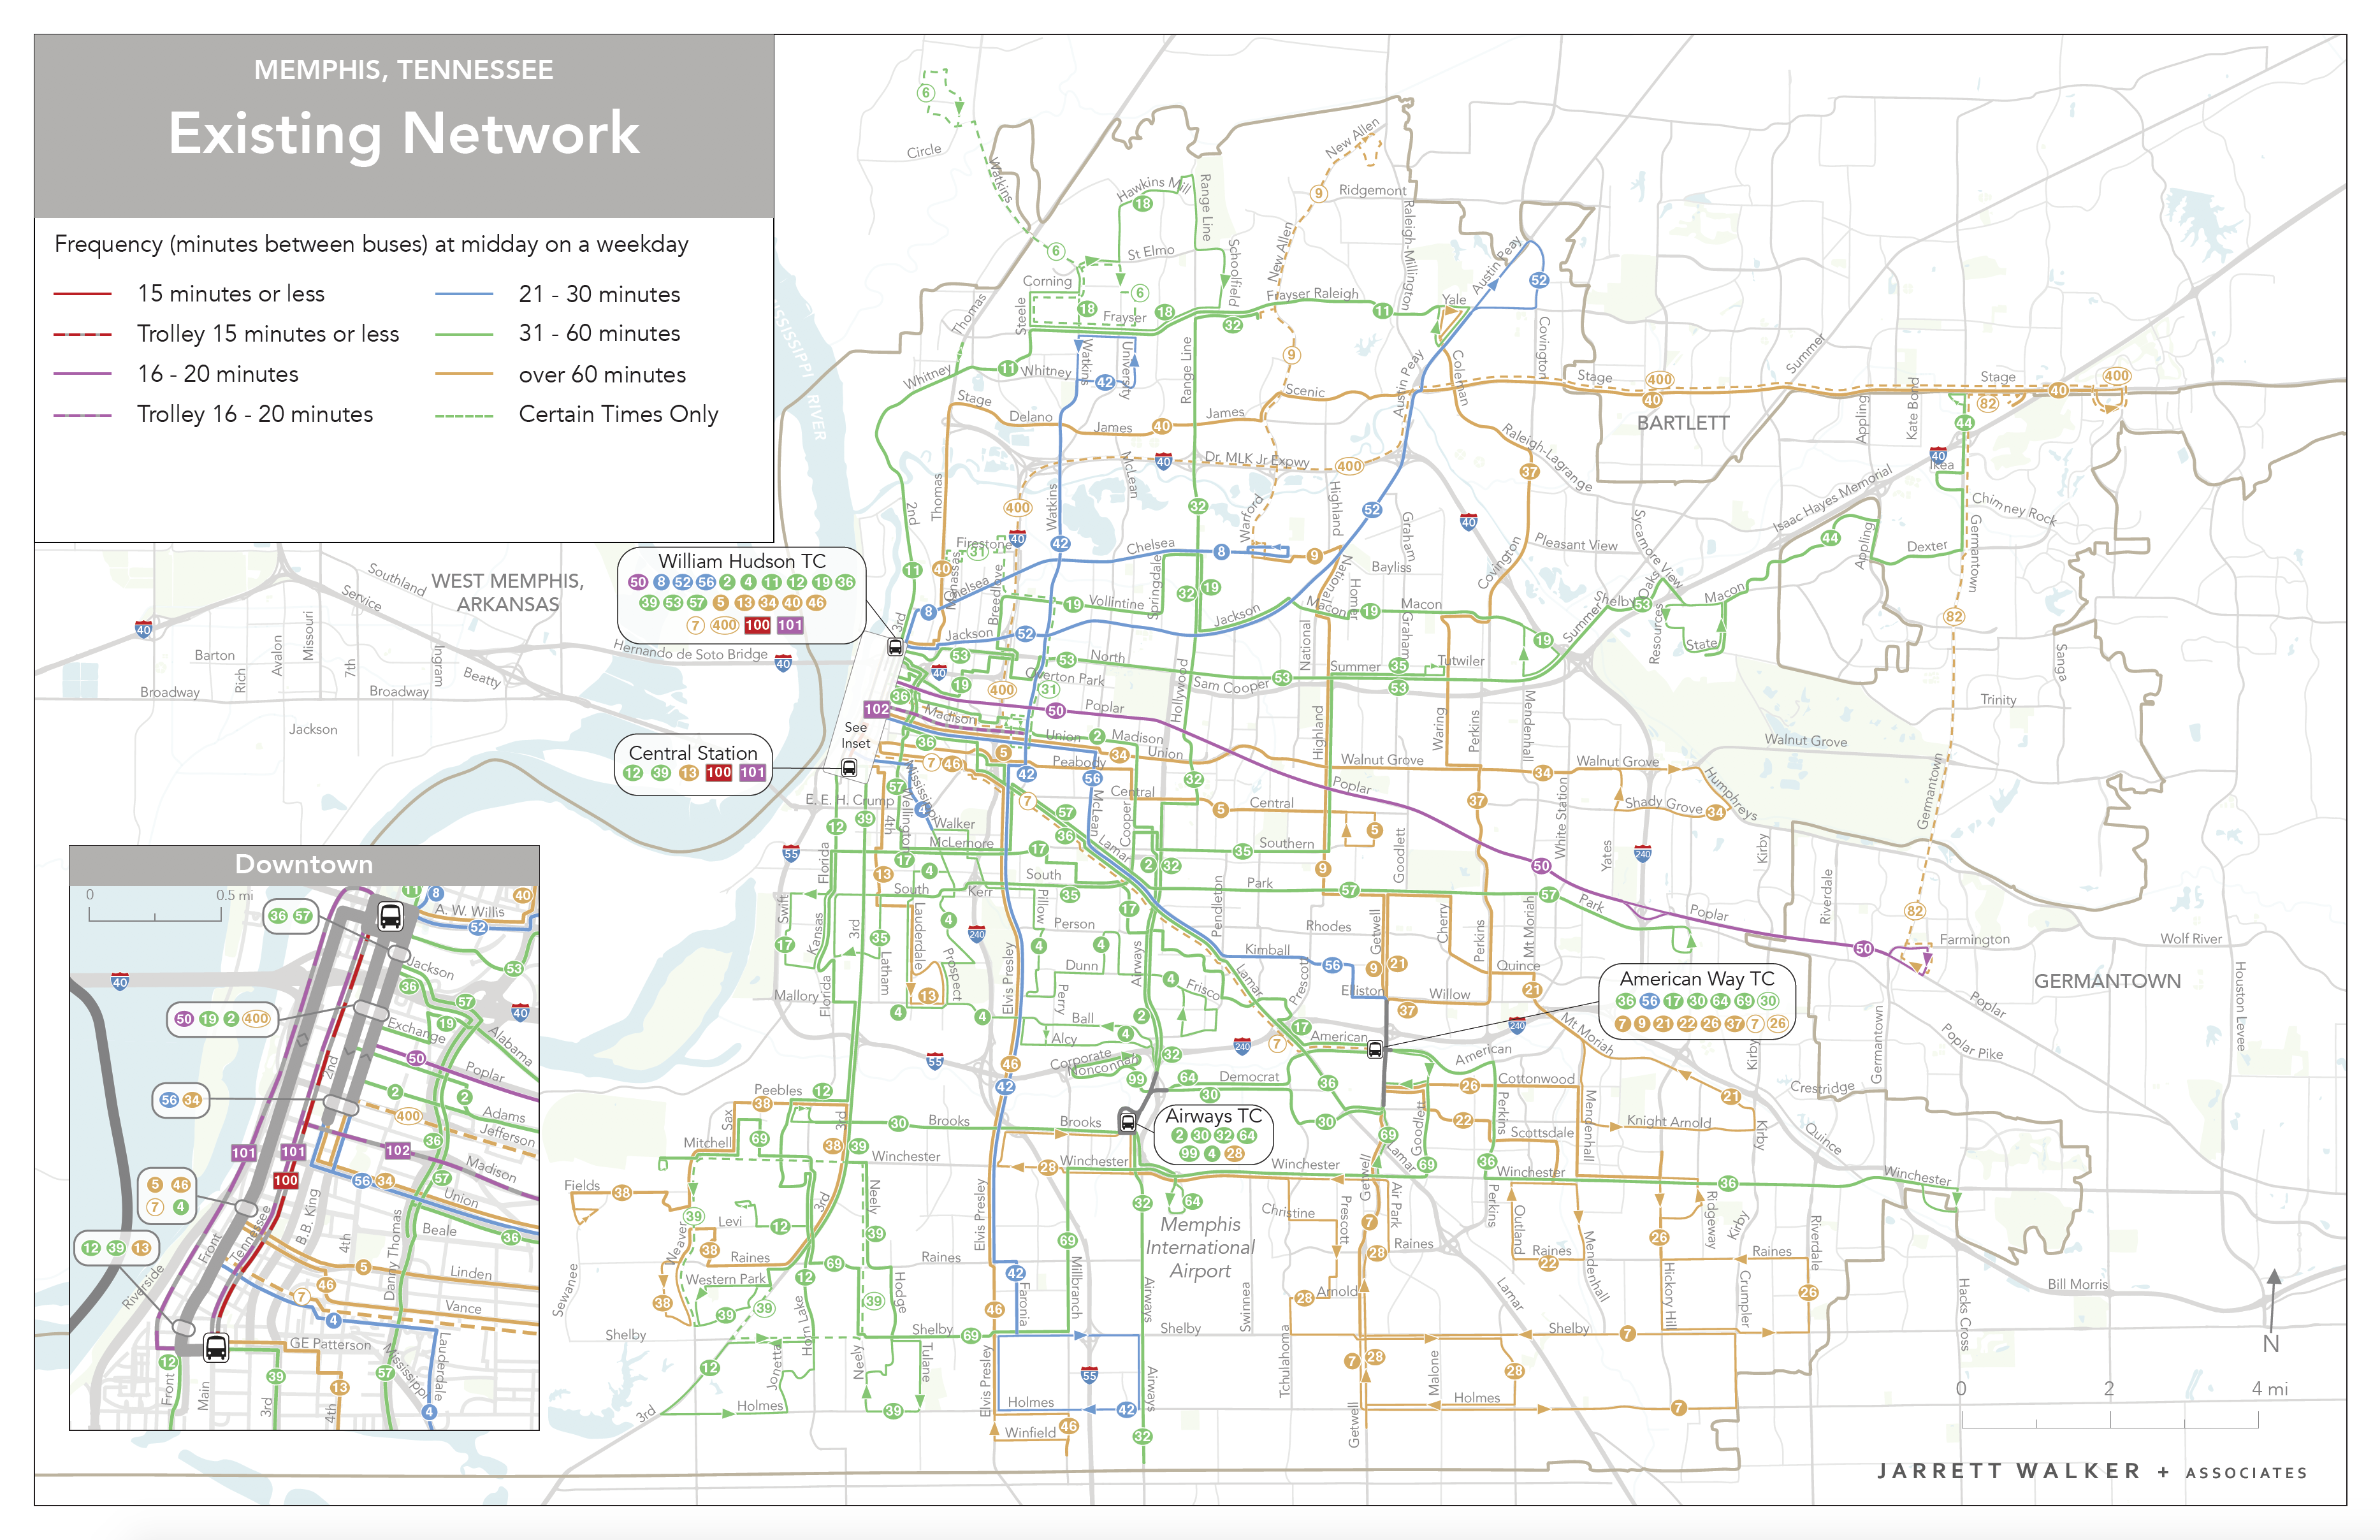 Image of existing transit map in the City of Memphis